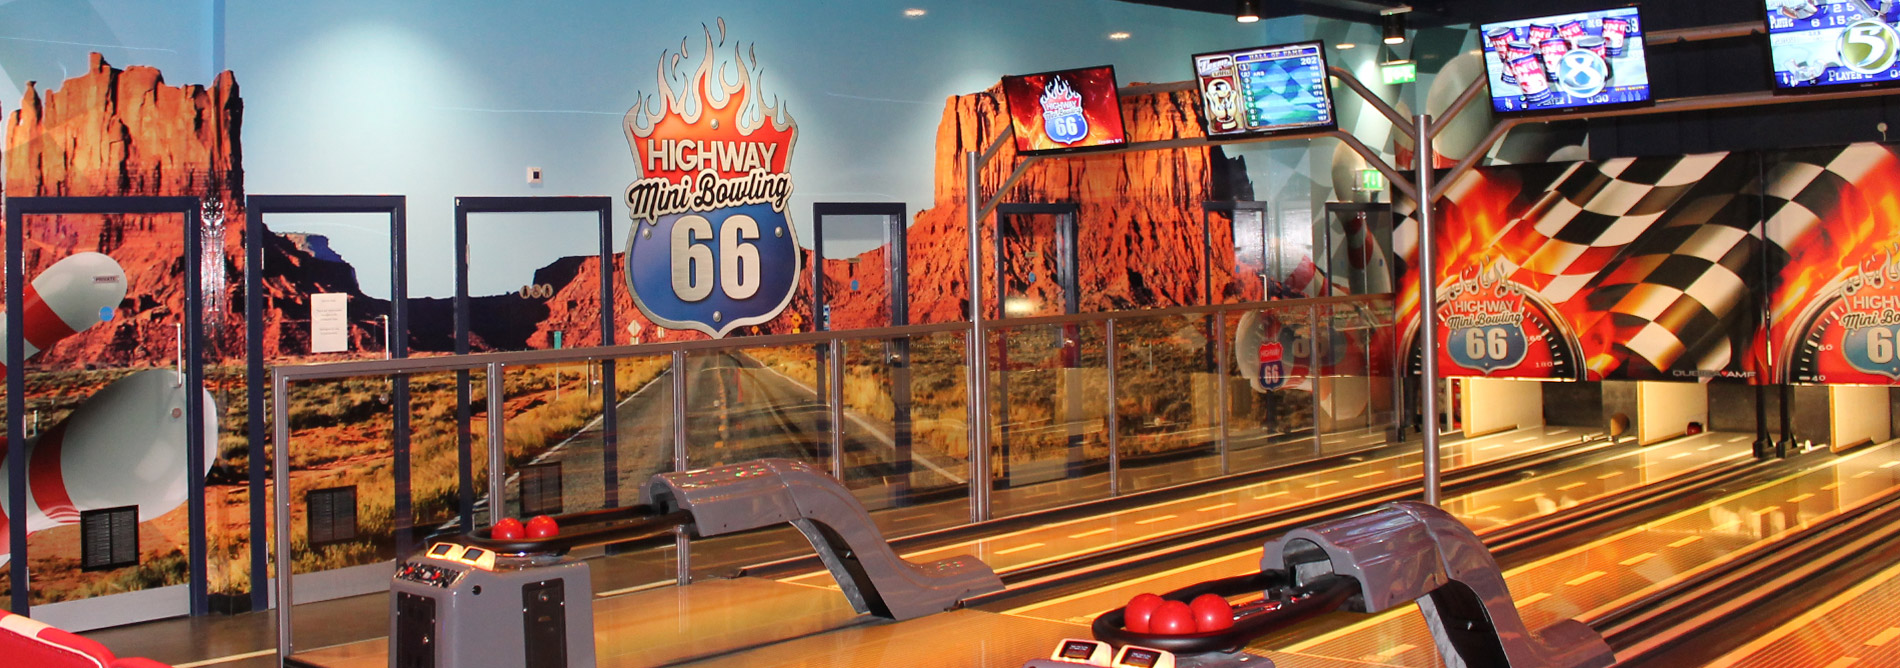 Bowling-QubicaAMF-mini-bowling-highway66-banner.jpg